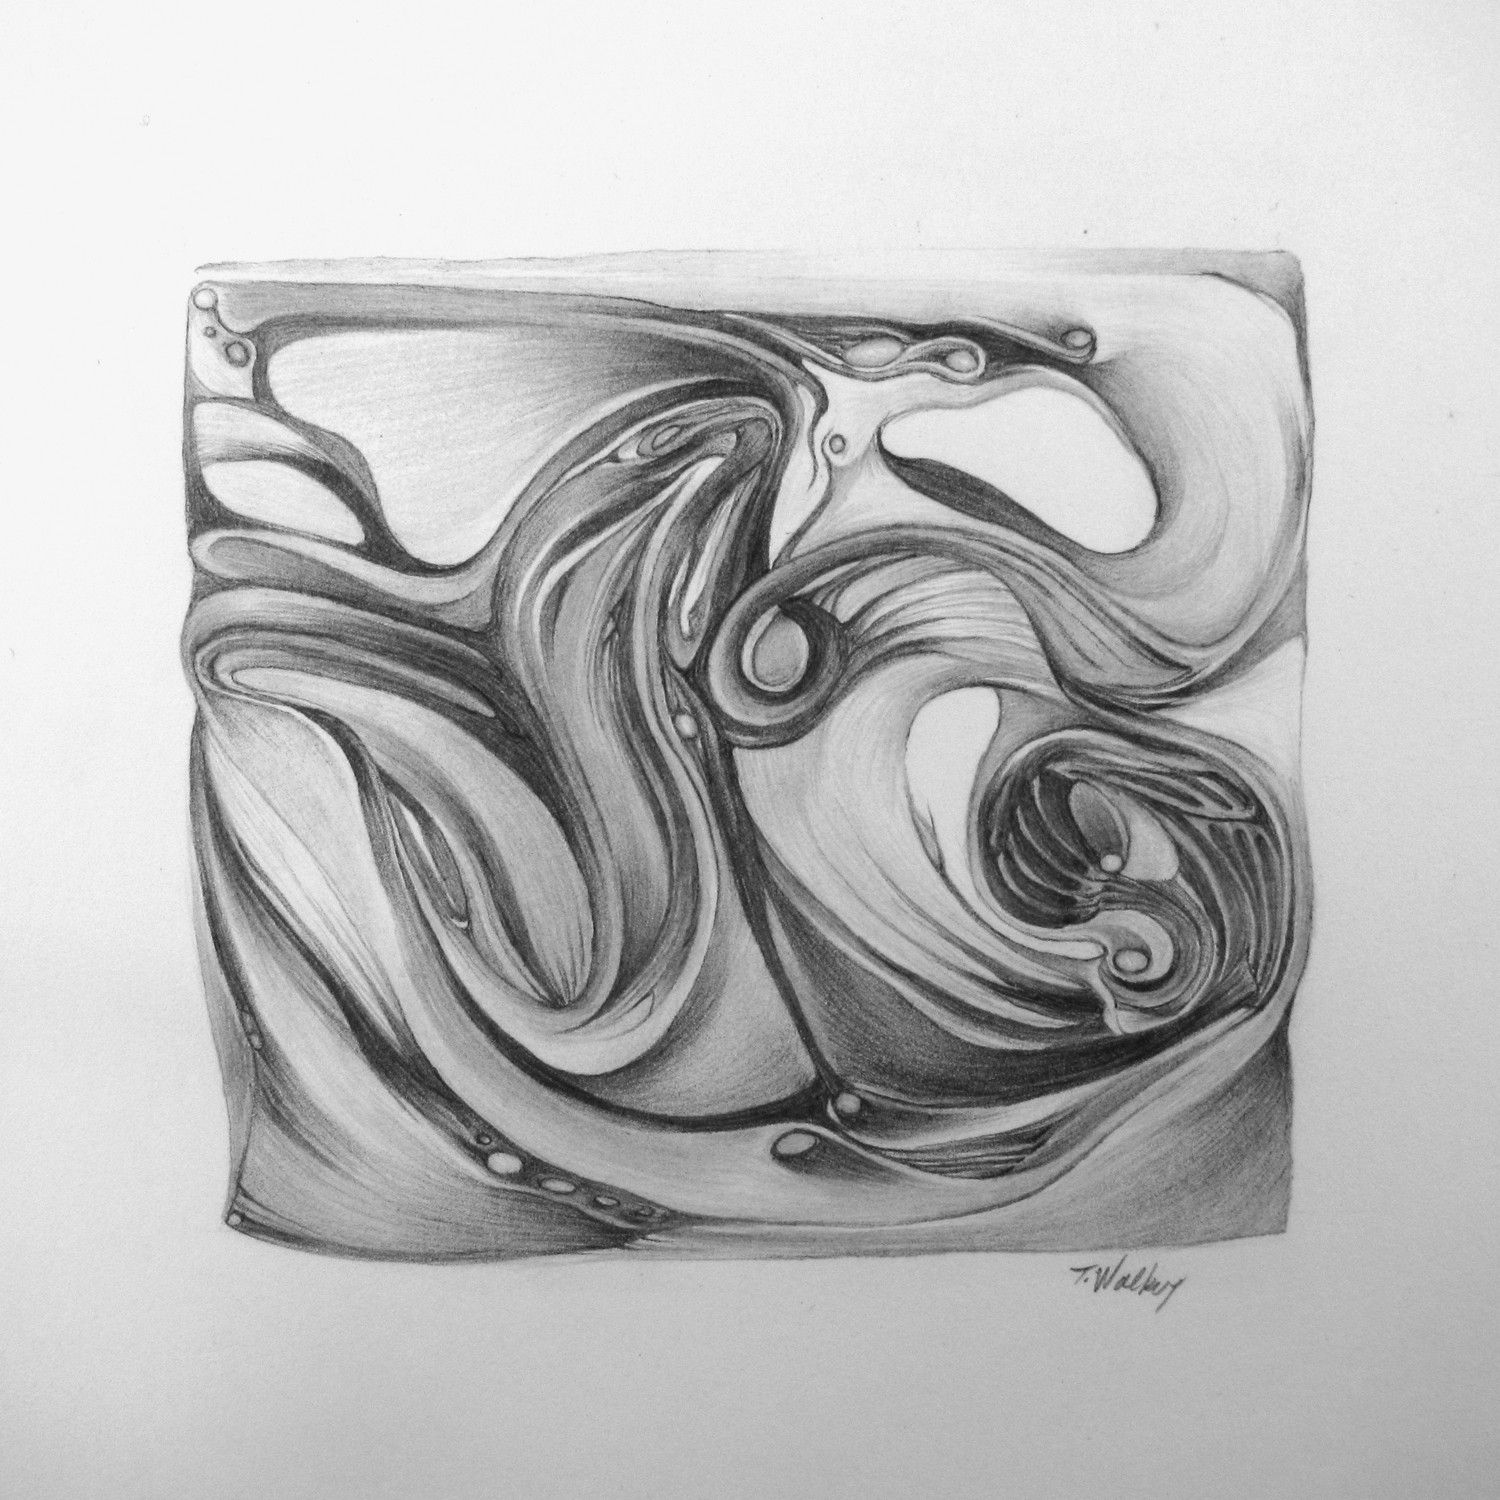 Abstract Pencil Sketch